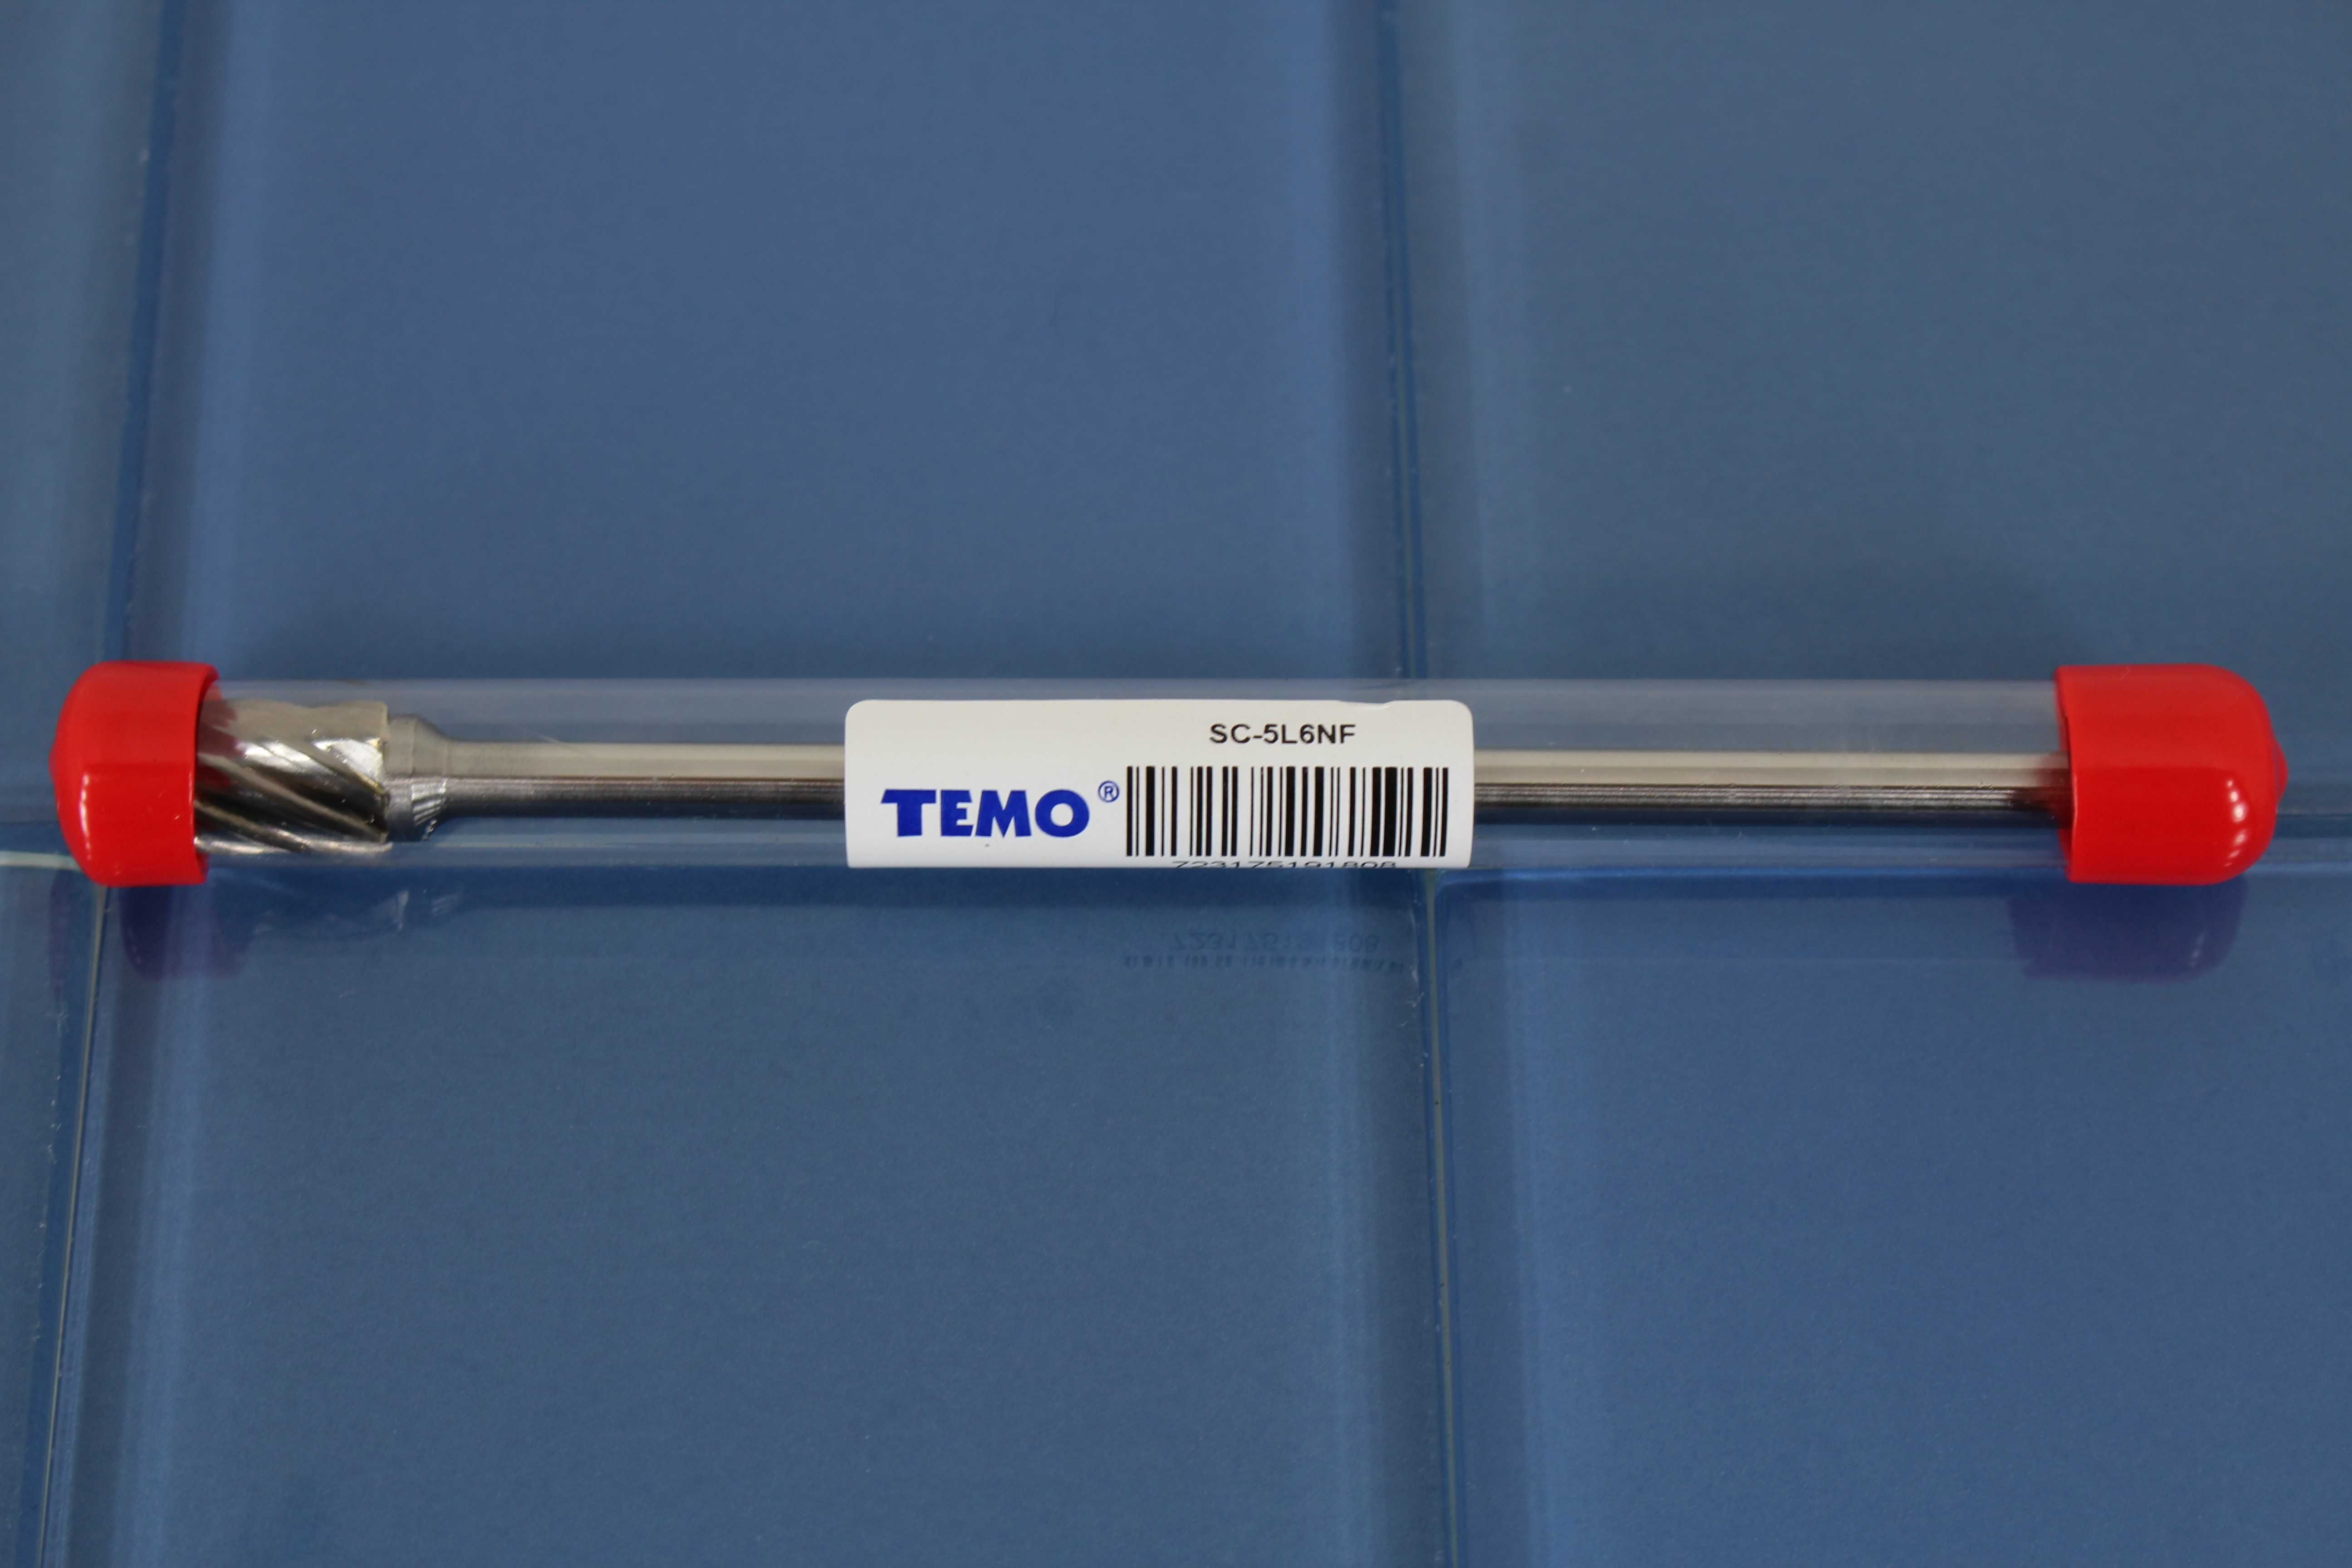 TEMO SC-5L6 NF Aluminum Cut Carbide Rotary Burr File, 1/2 inch (12.7mm) Head Cylinder Ball, 1/4 inch (6.35mm) Diameter 6 inch (152mm) Long Shank